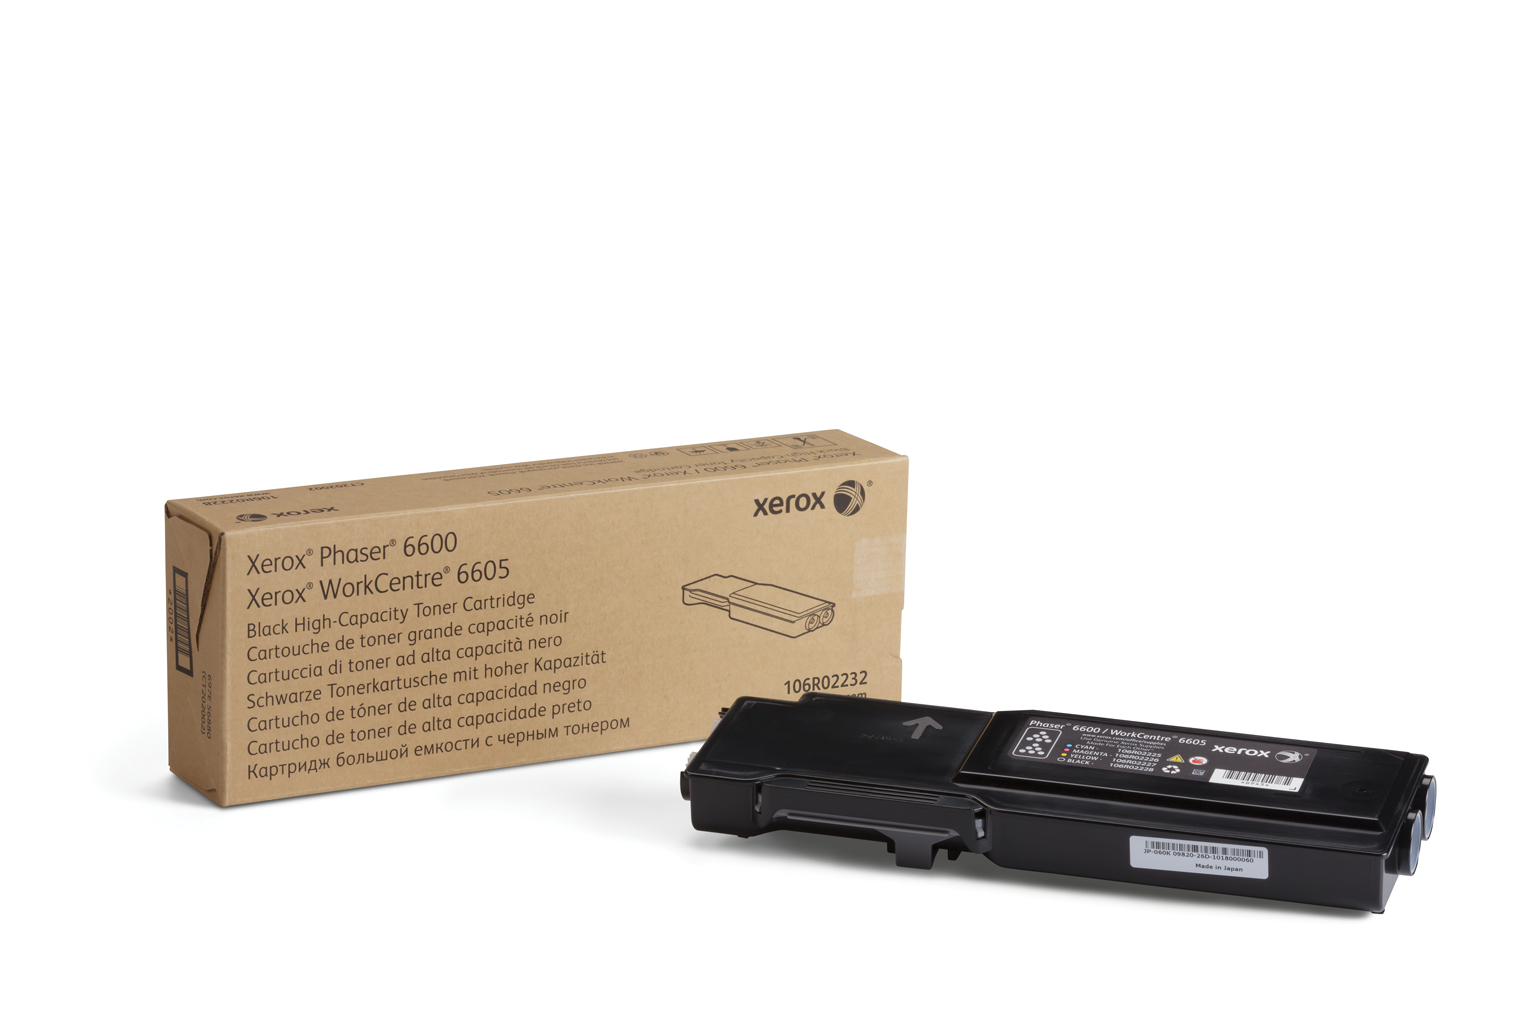 Xerox - Genuine Supplies         High Capacity Black Toner Cartr     Na (yield 8k)                       106r02232